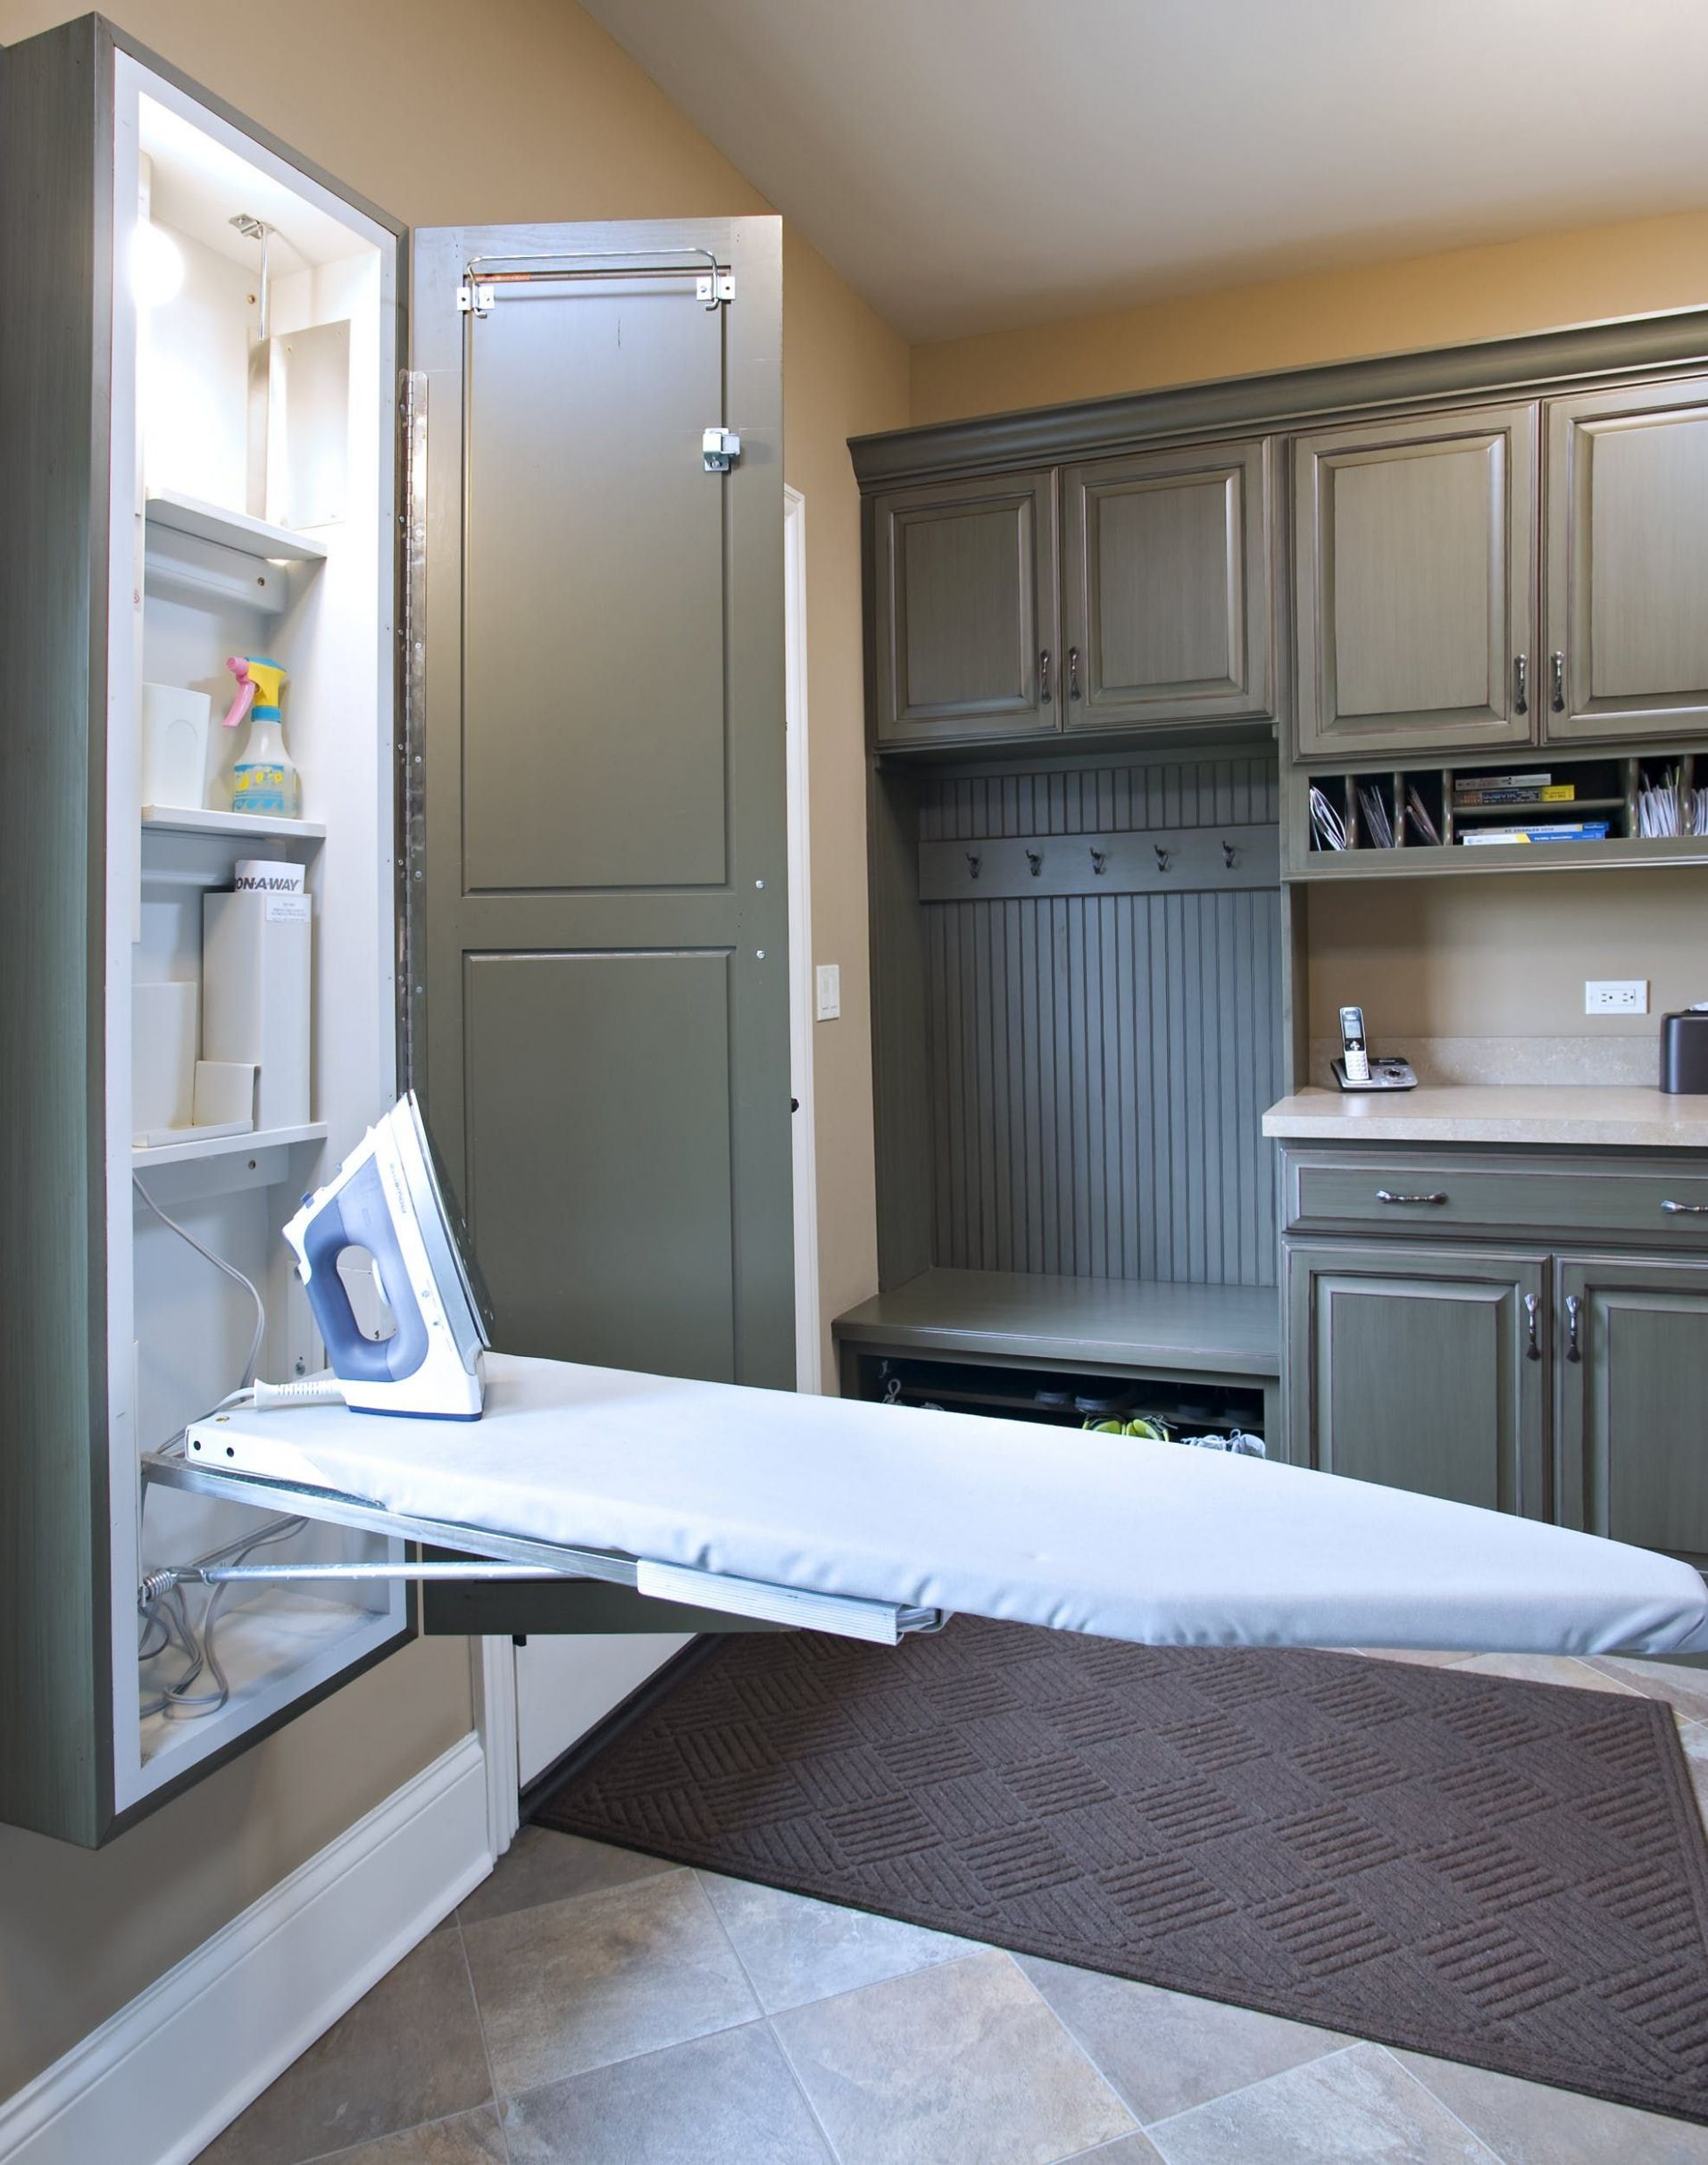 Clever Ideas to Make the Most of a Small Laundry Room (With images ...